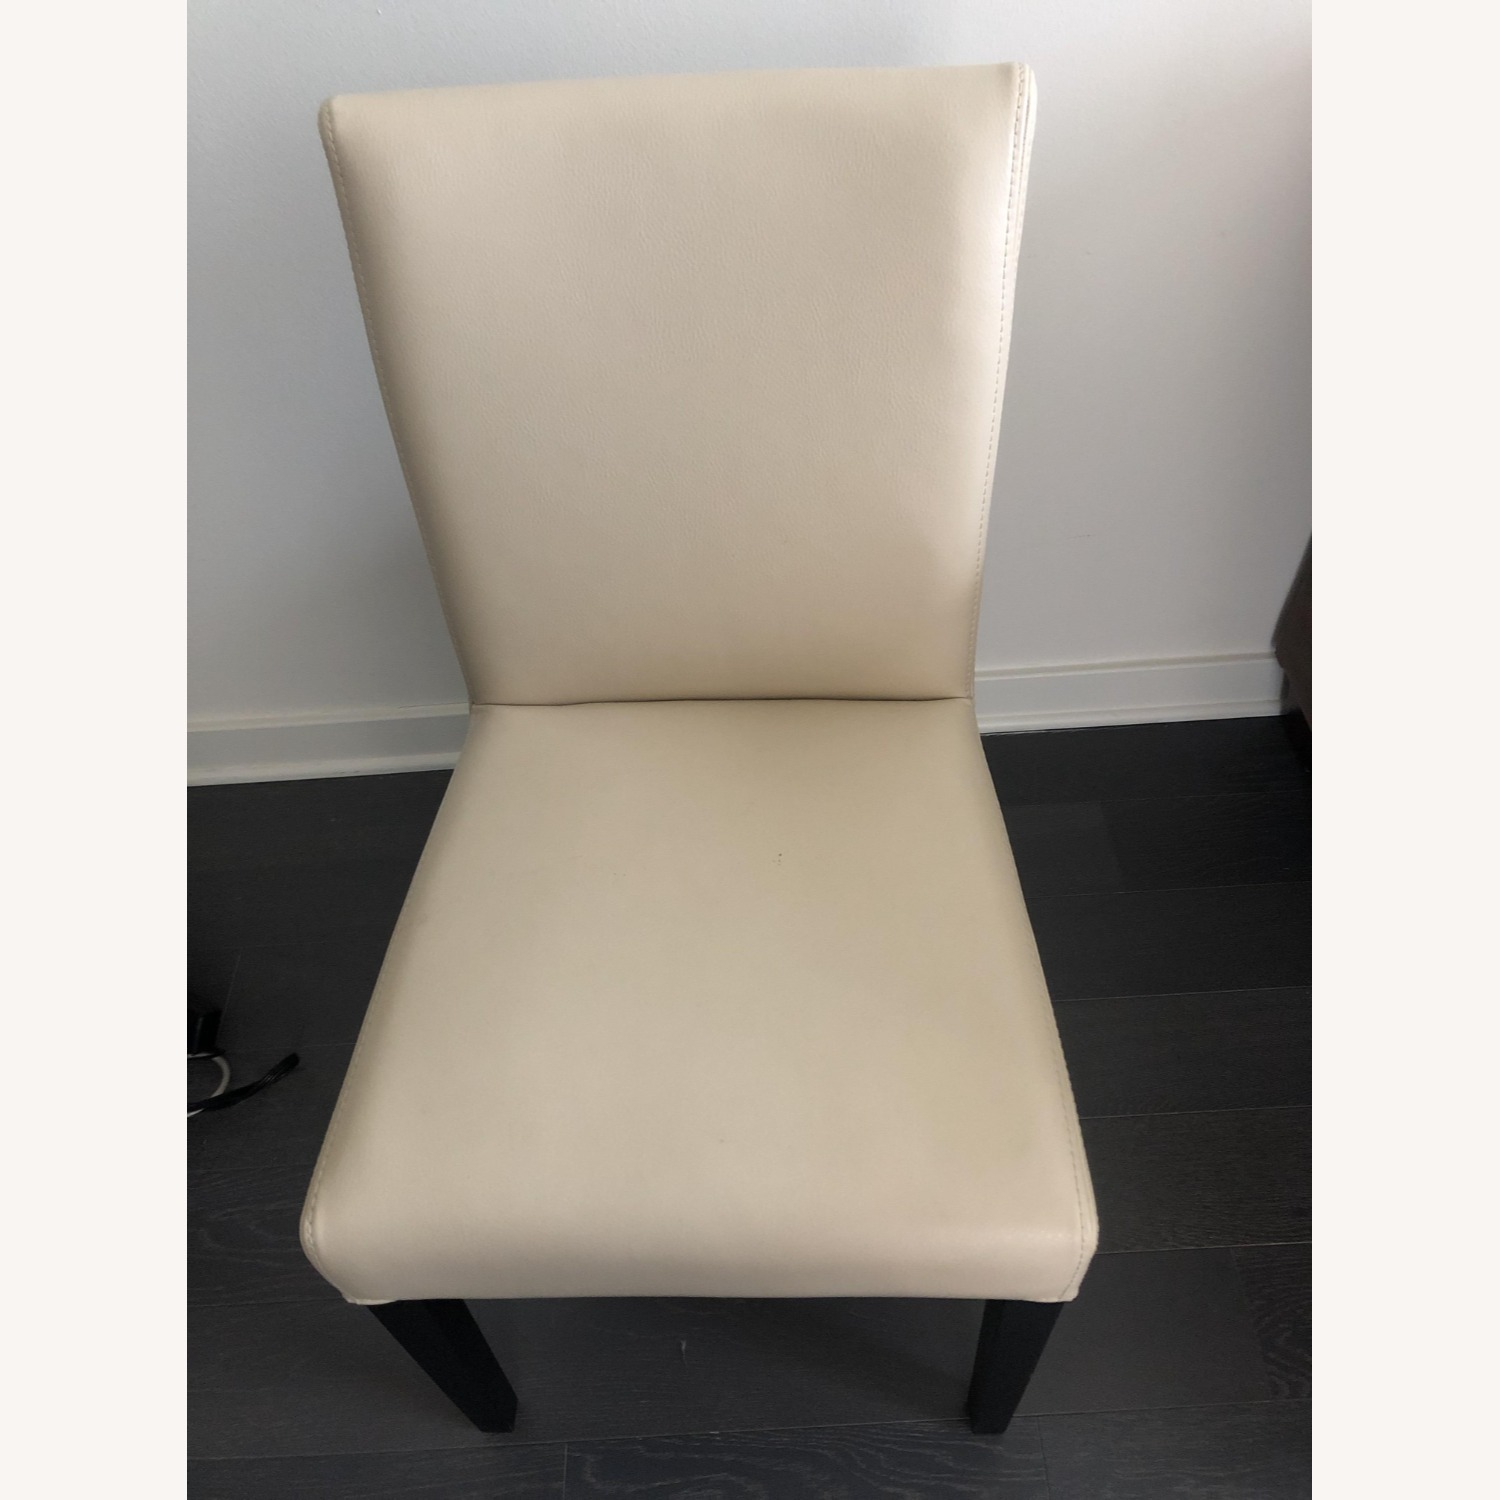 Crate & Barrel Lowe Ivory Leather Dining Chair - image-5